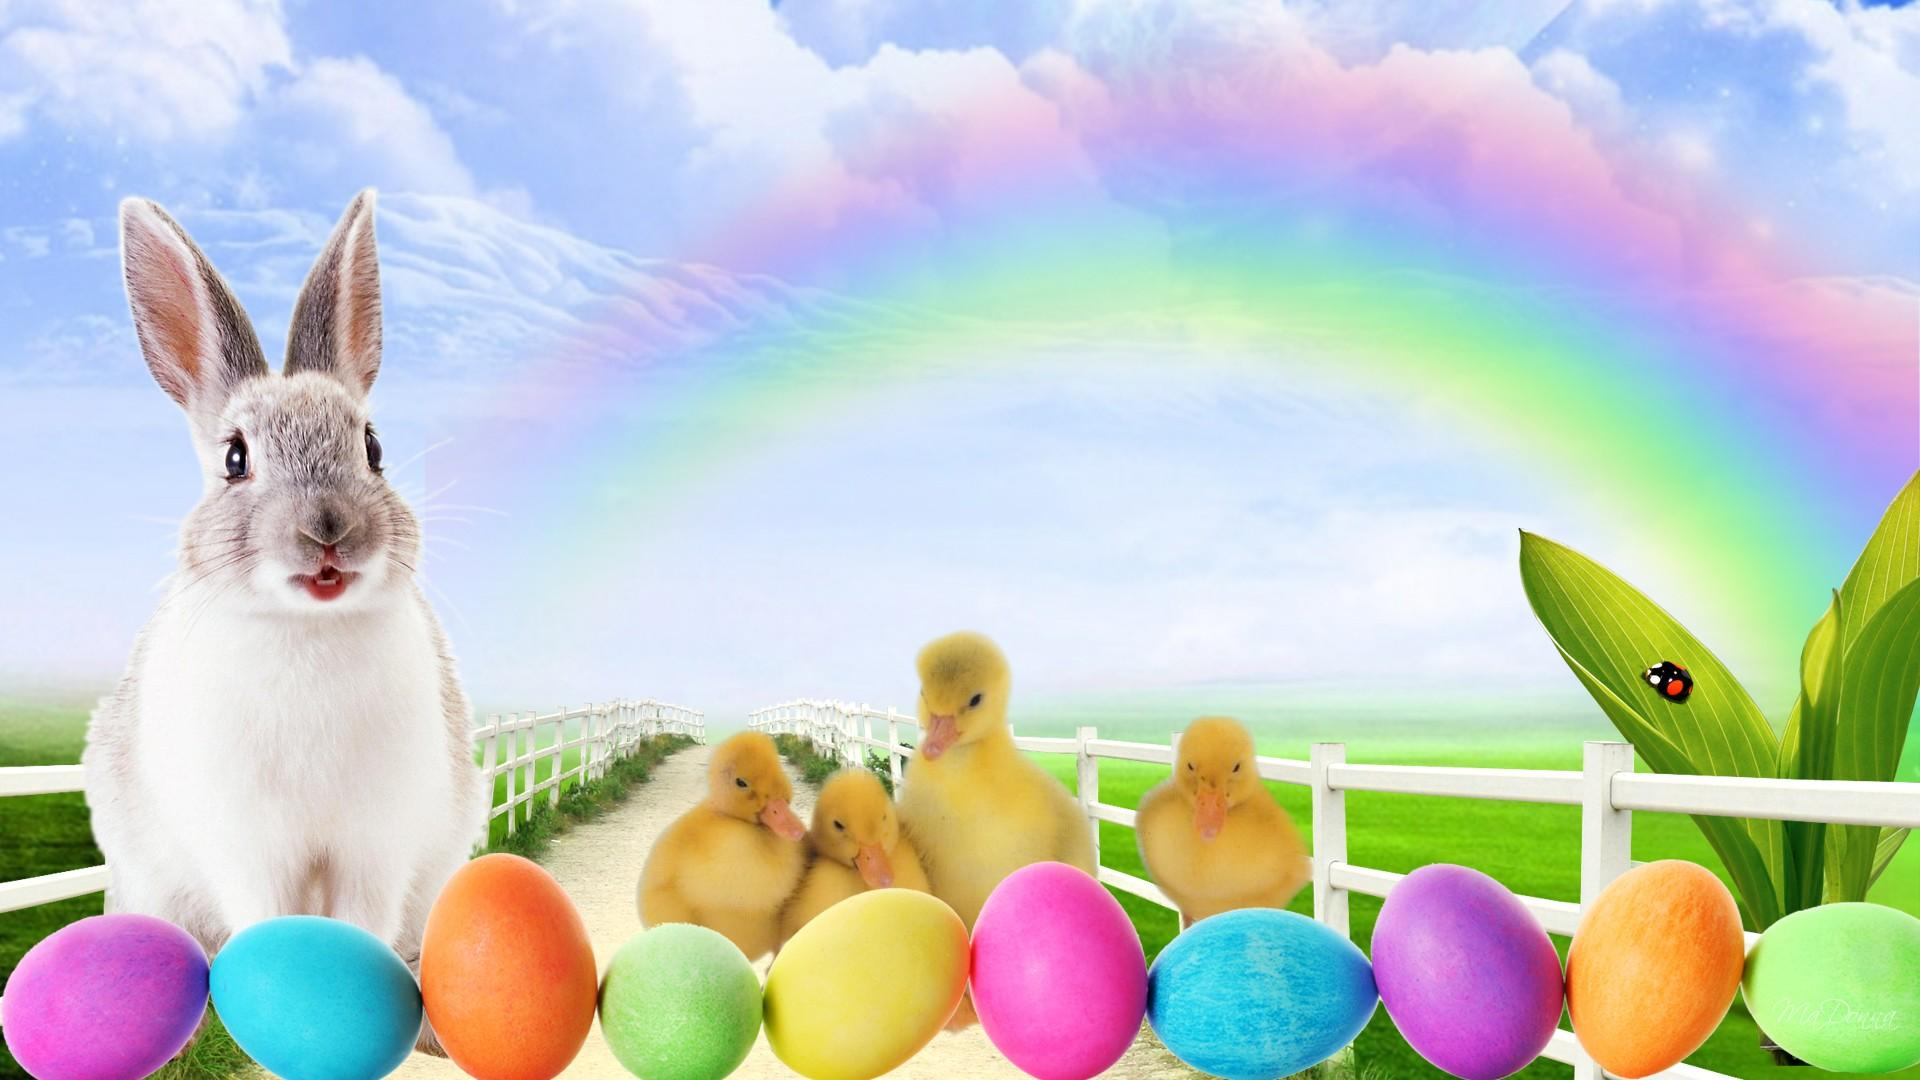 easter bunny wallpaper which is under the easter wallpapers 1920x1080